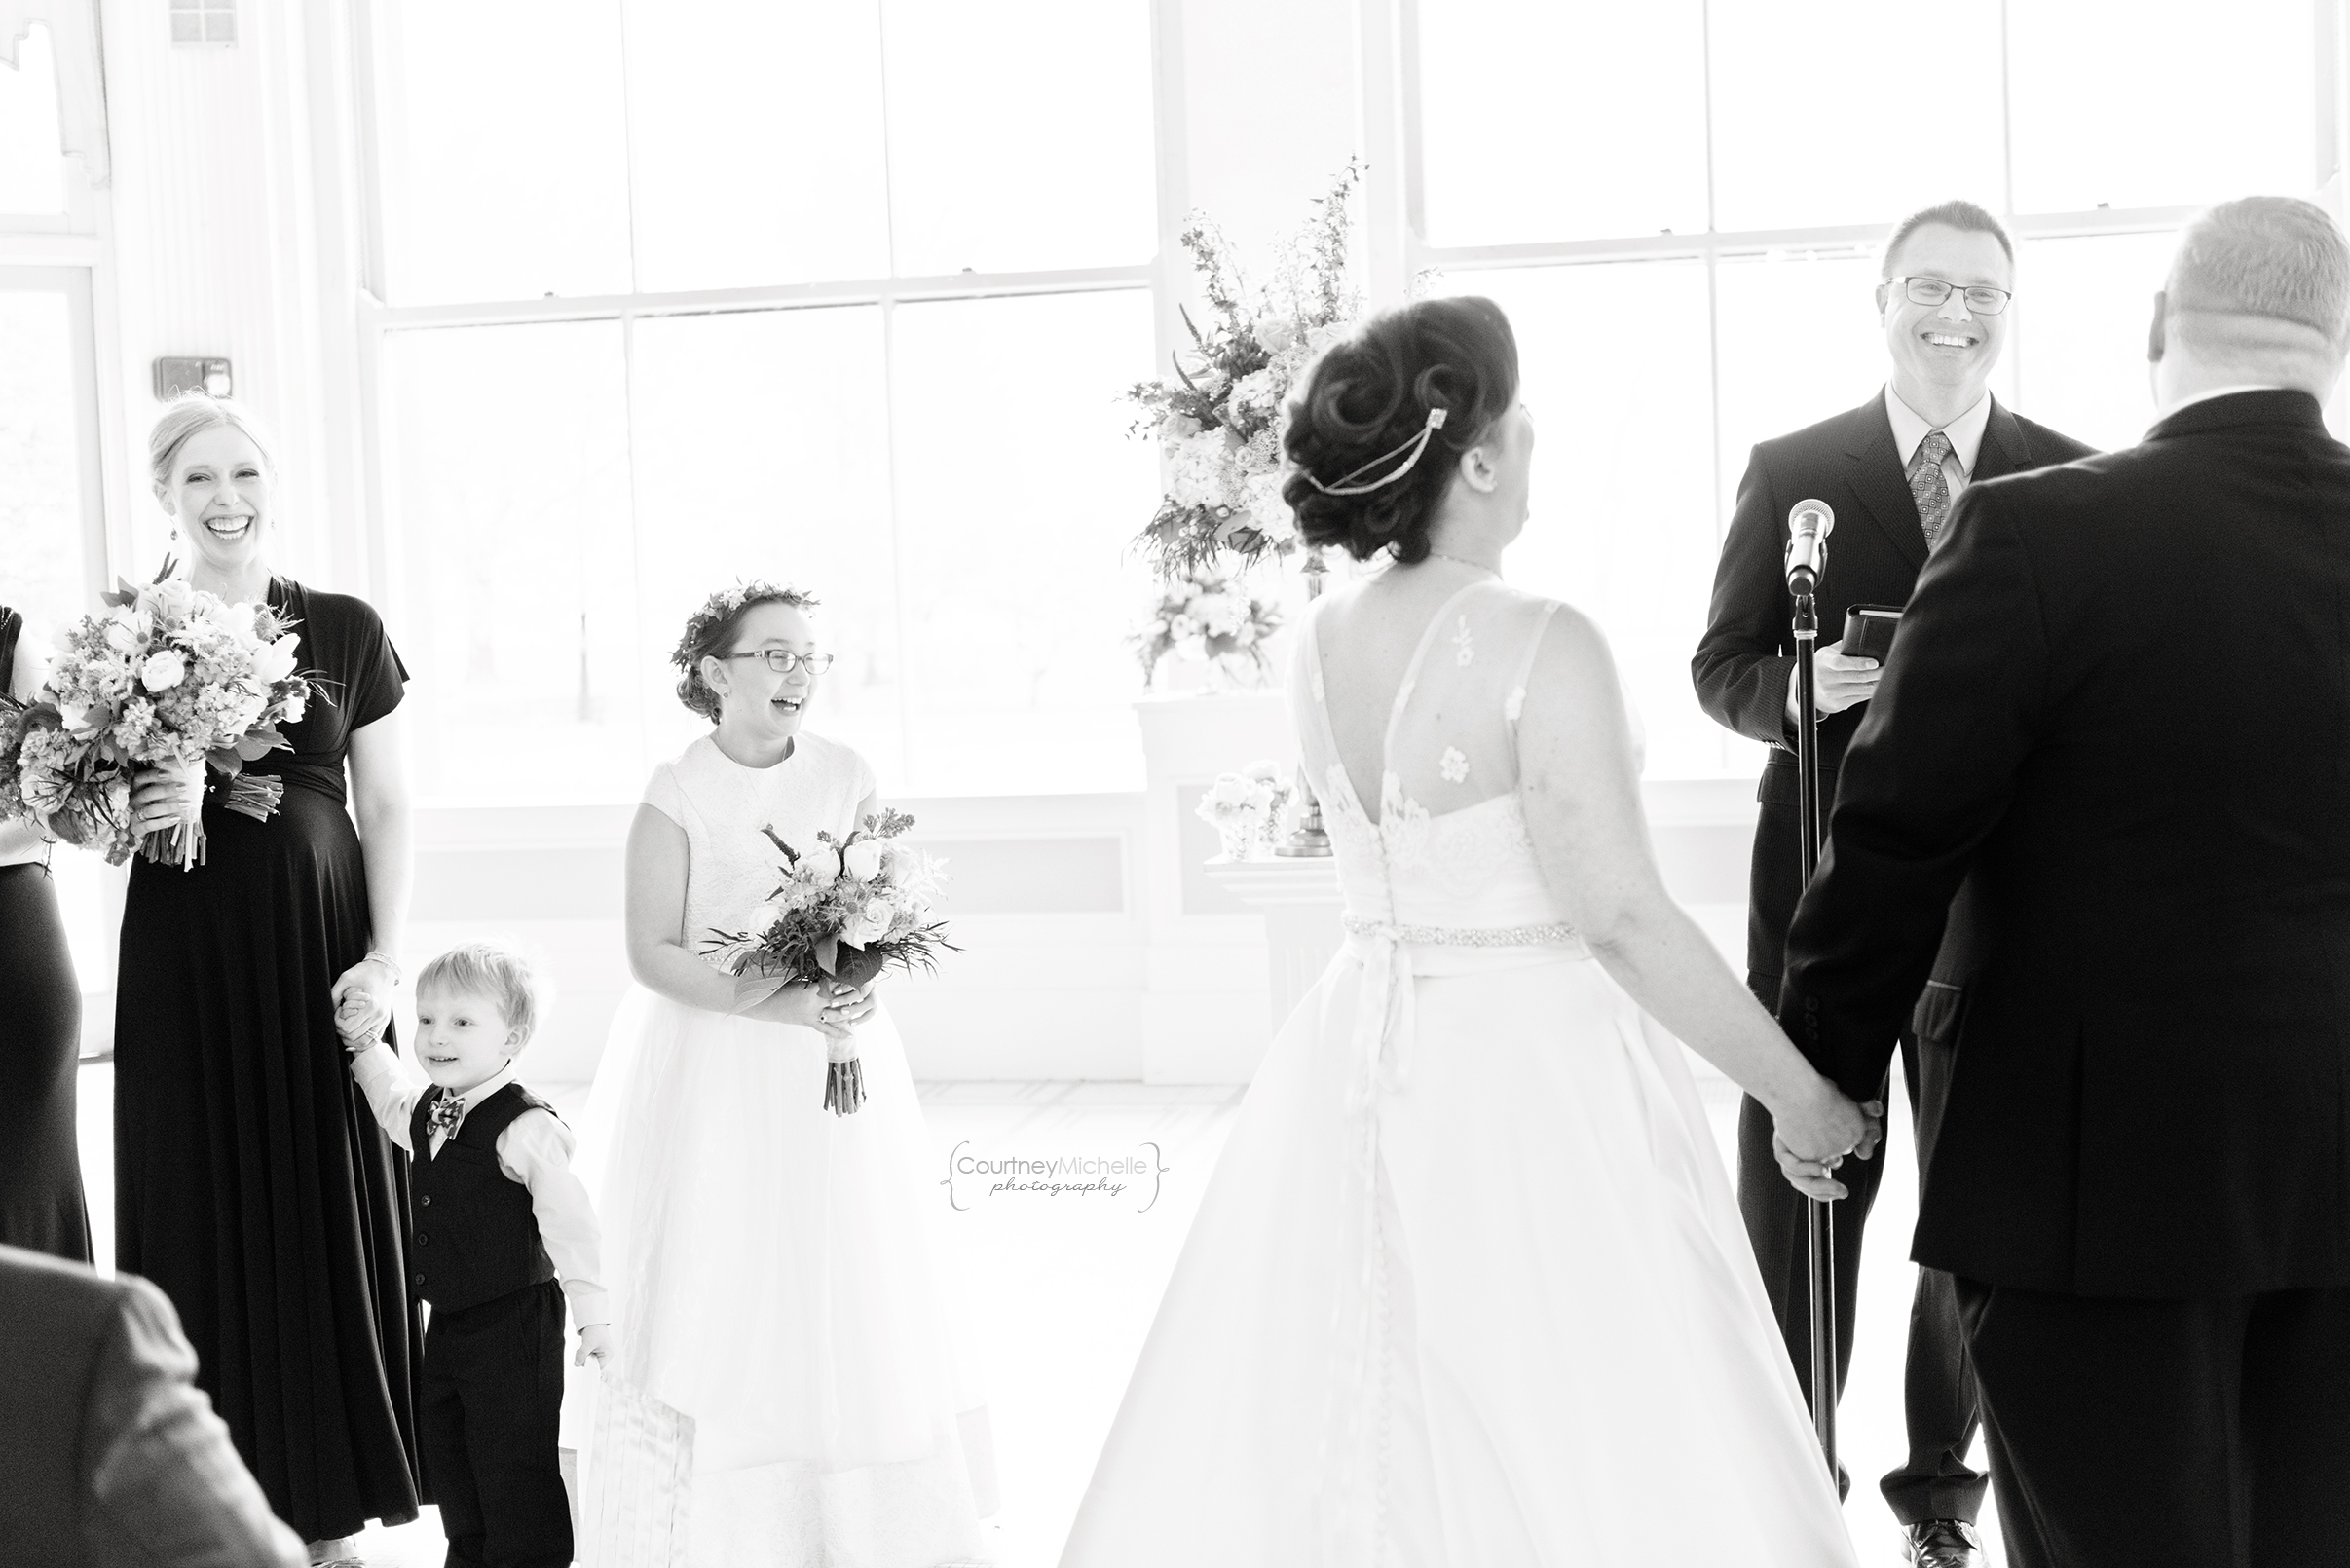 chicago-wedding-photographer-south-shore-cultural-center-ceremony-laughing